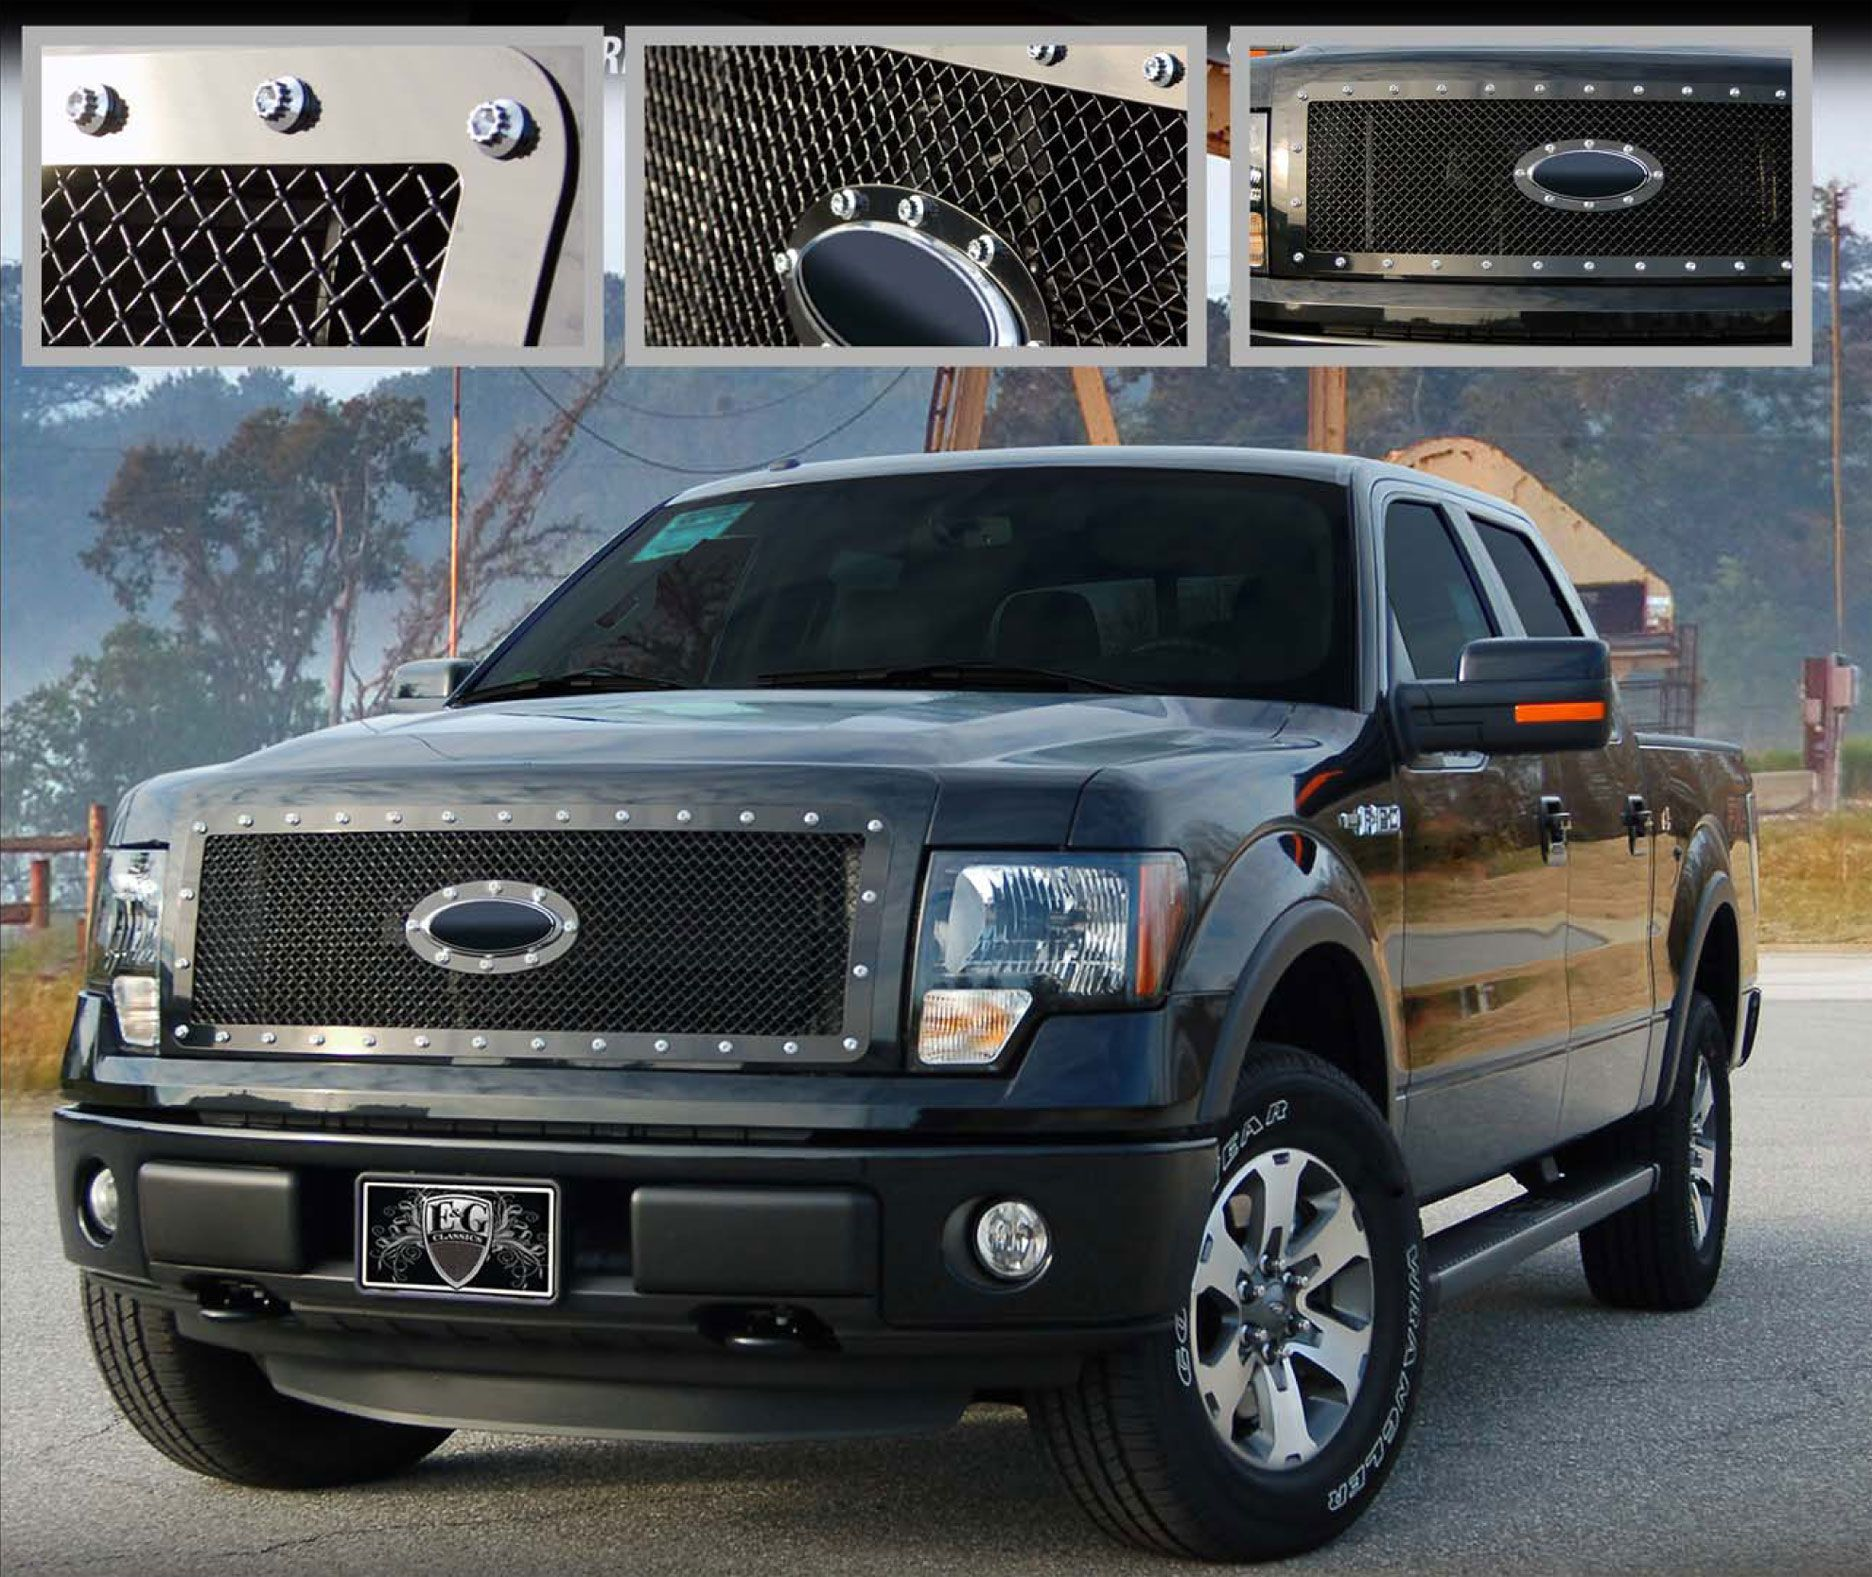 2009 13 Ford F150 E Power Heavy Mesh Style Grille Call For Part Number 1045 0104 09ep Please Note That This Part Fits Ford Trucks Birthday Party Ford Trucks